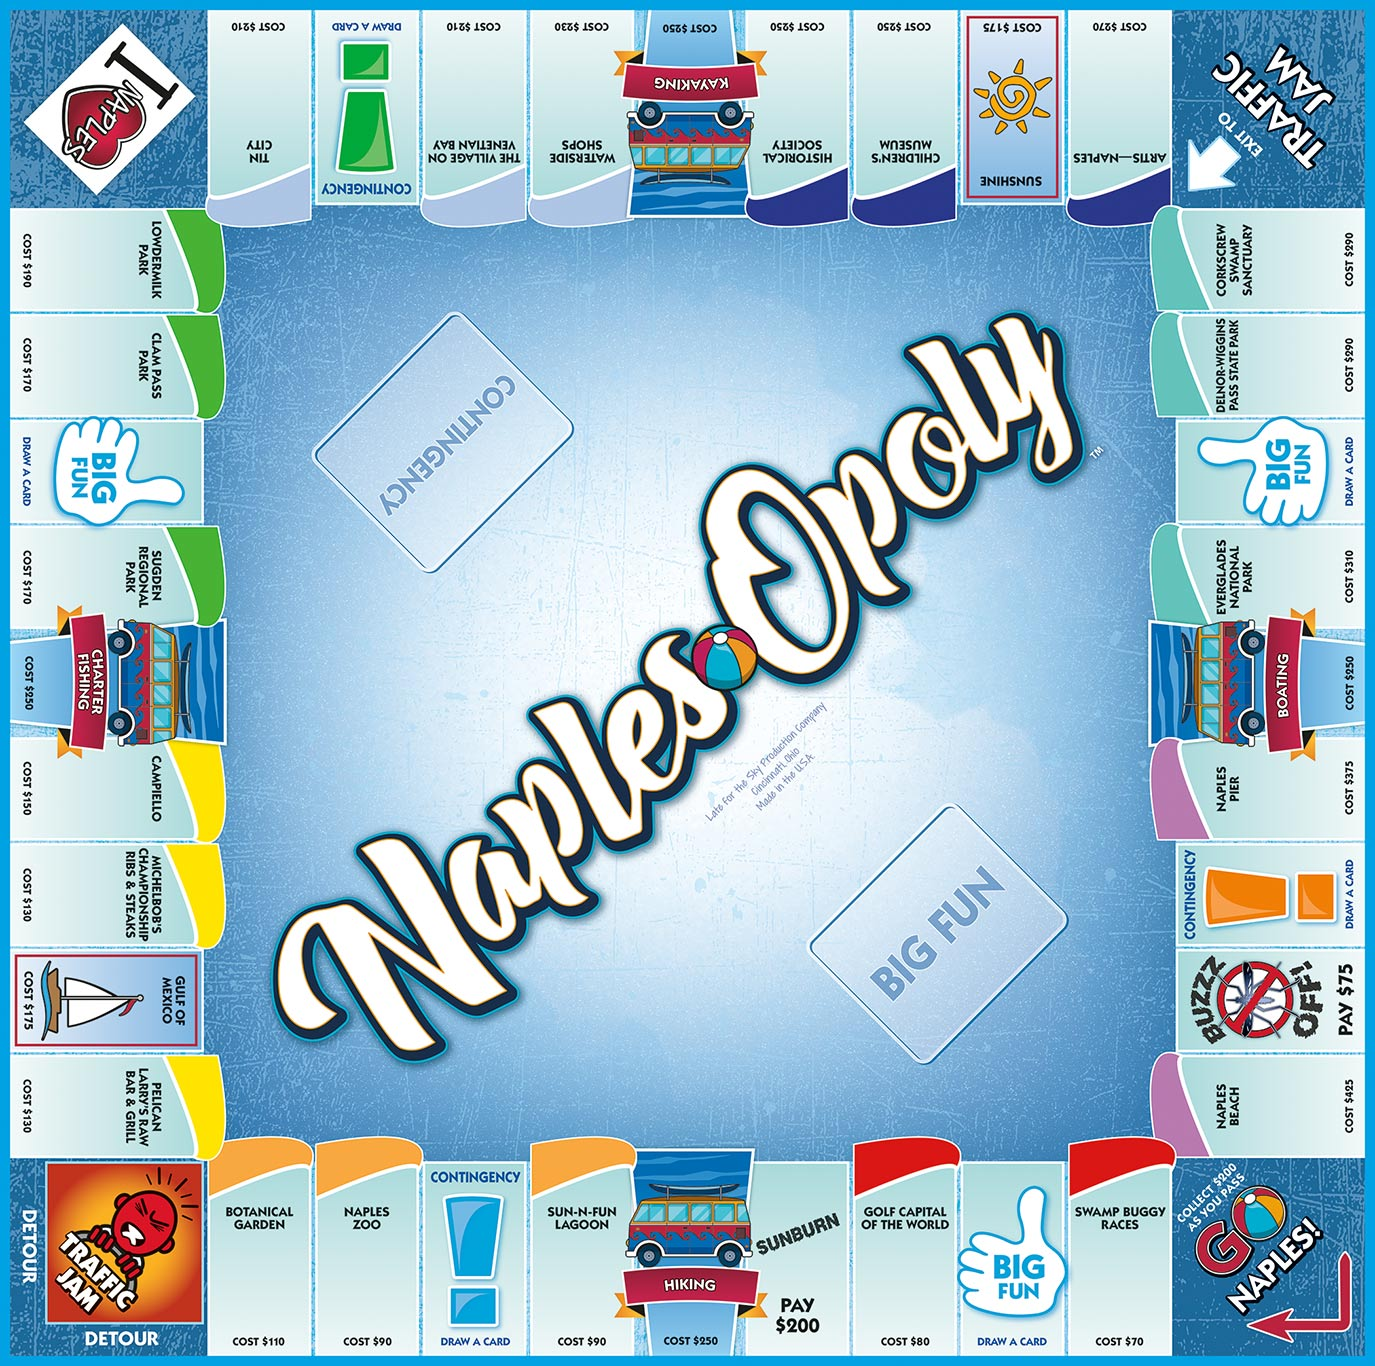 NAPLES-OPOLY Board Game